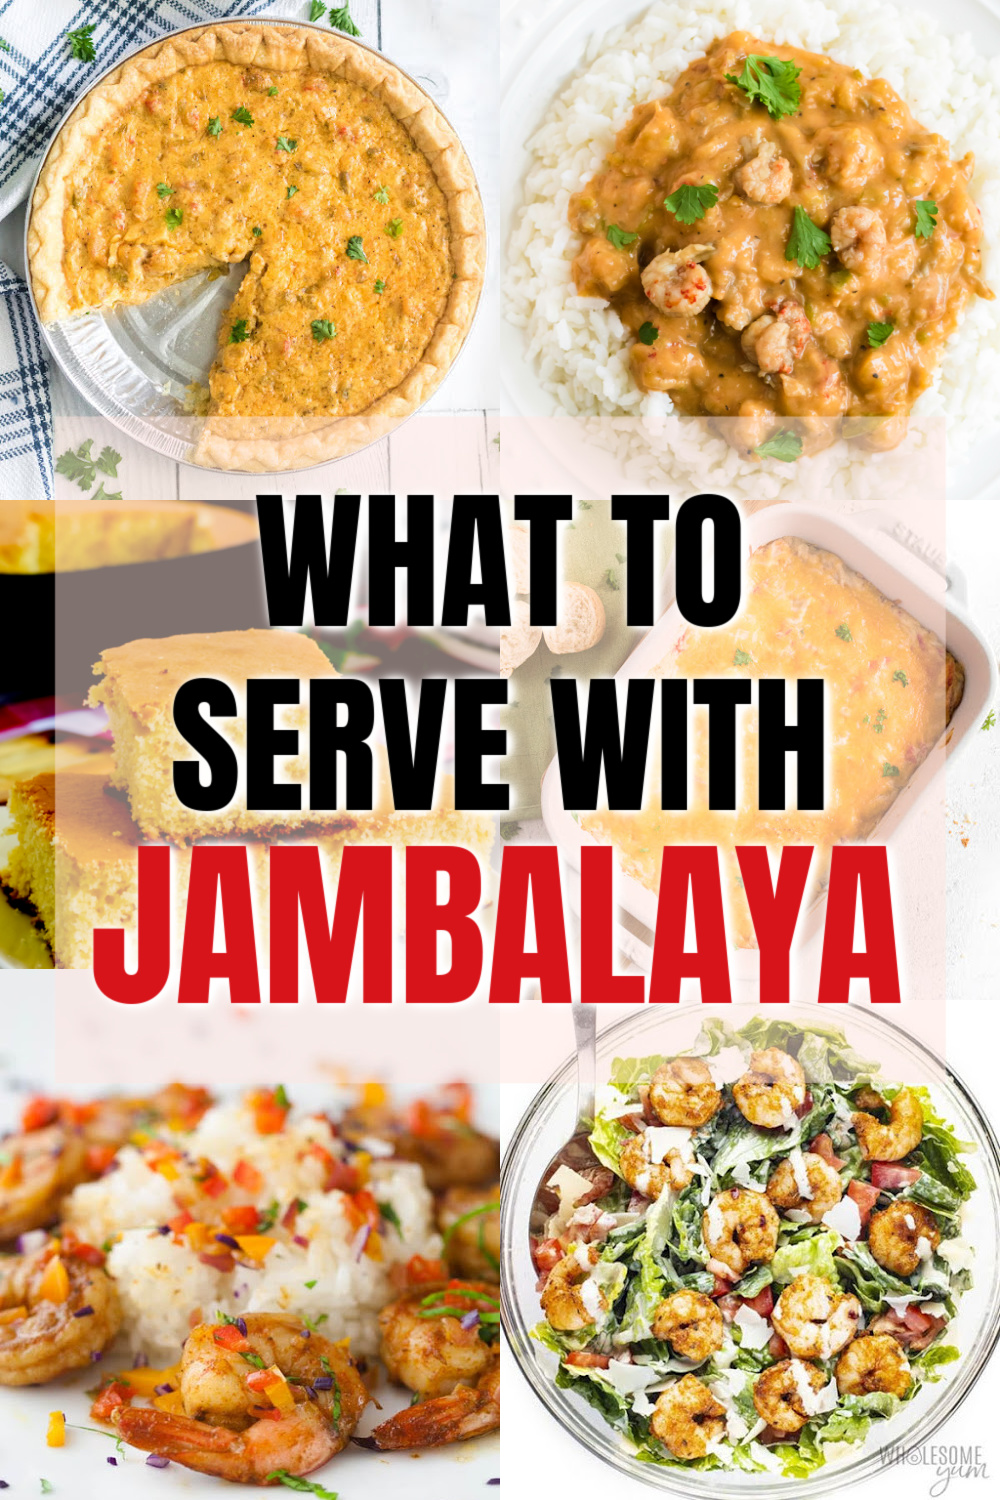 Have a love for Jambalaya and looking for pairings and sides to serve with it? Look no further! We are sharing 31 of the best recipes to serve with jambalaya.